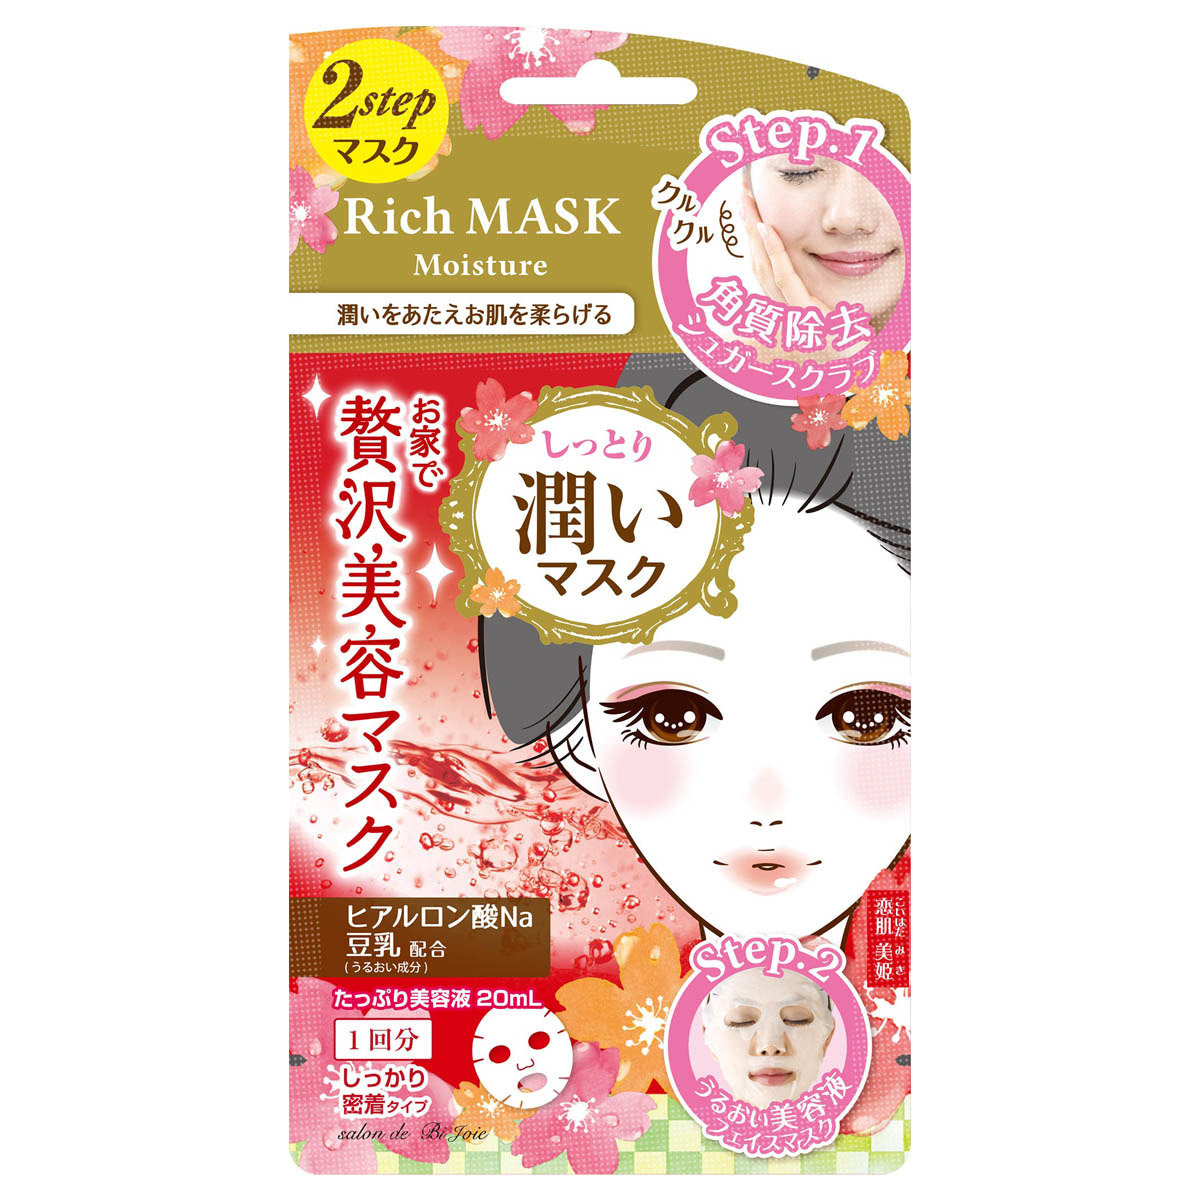 Rich Mask Deep Moisture